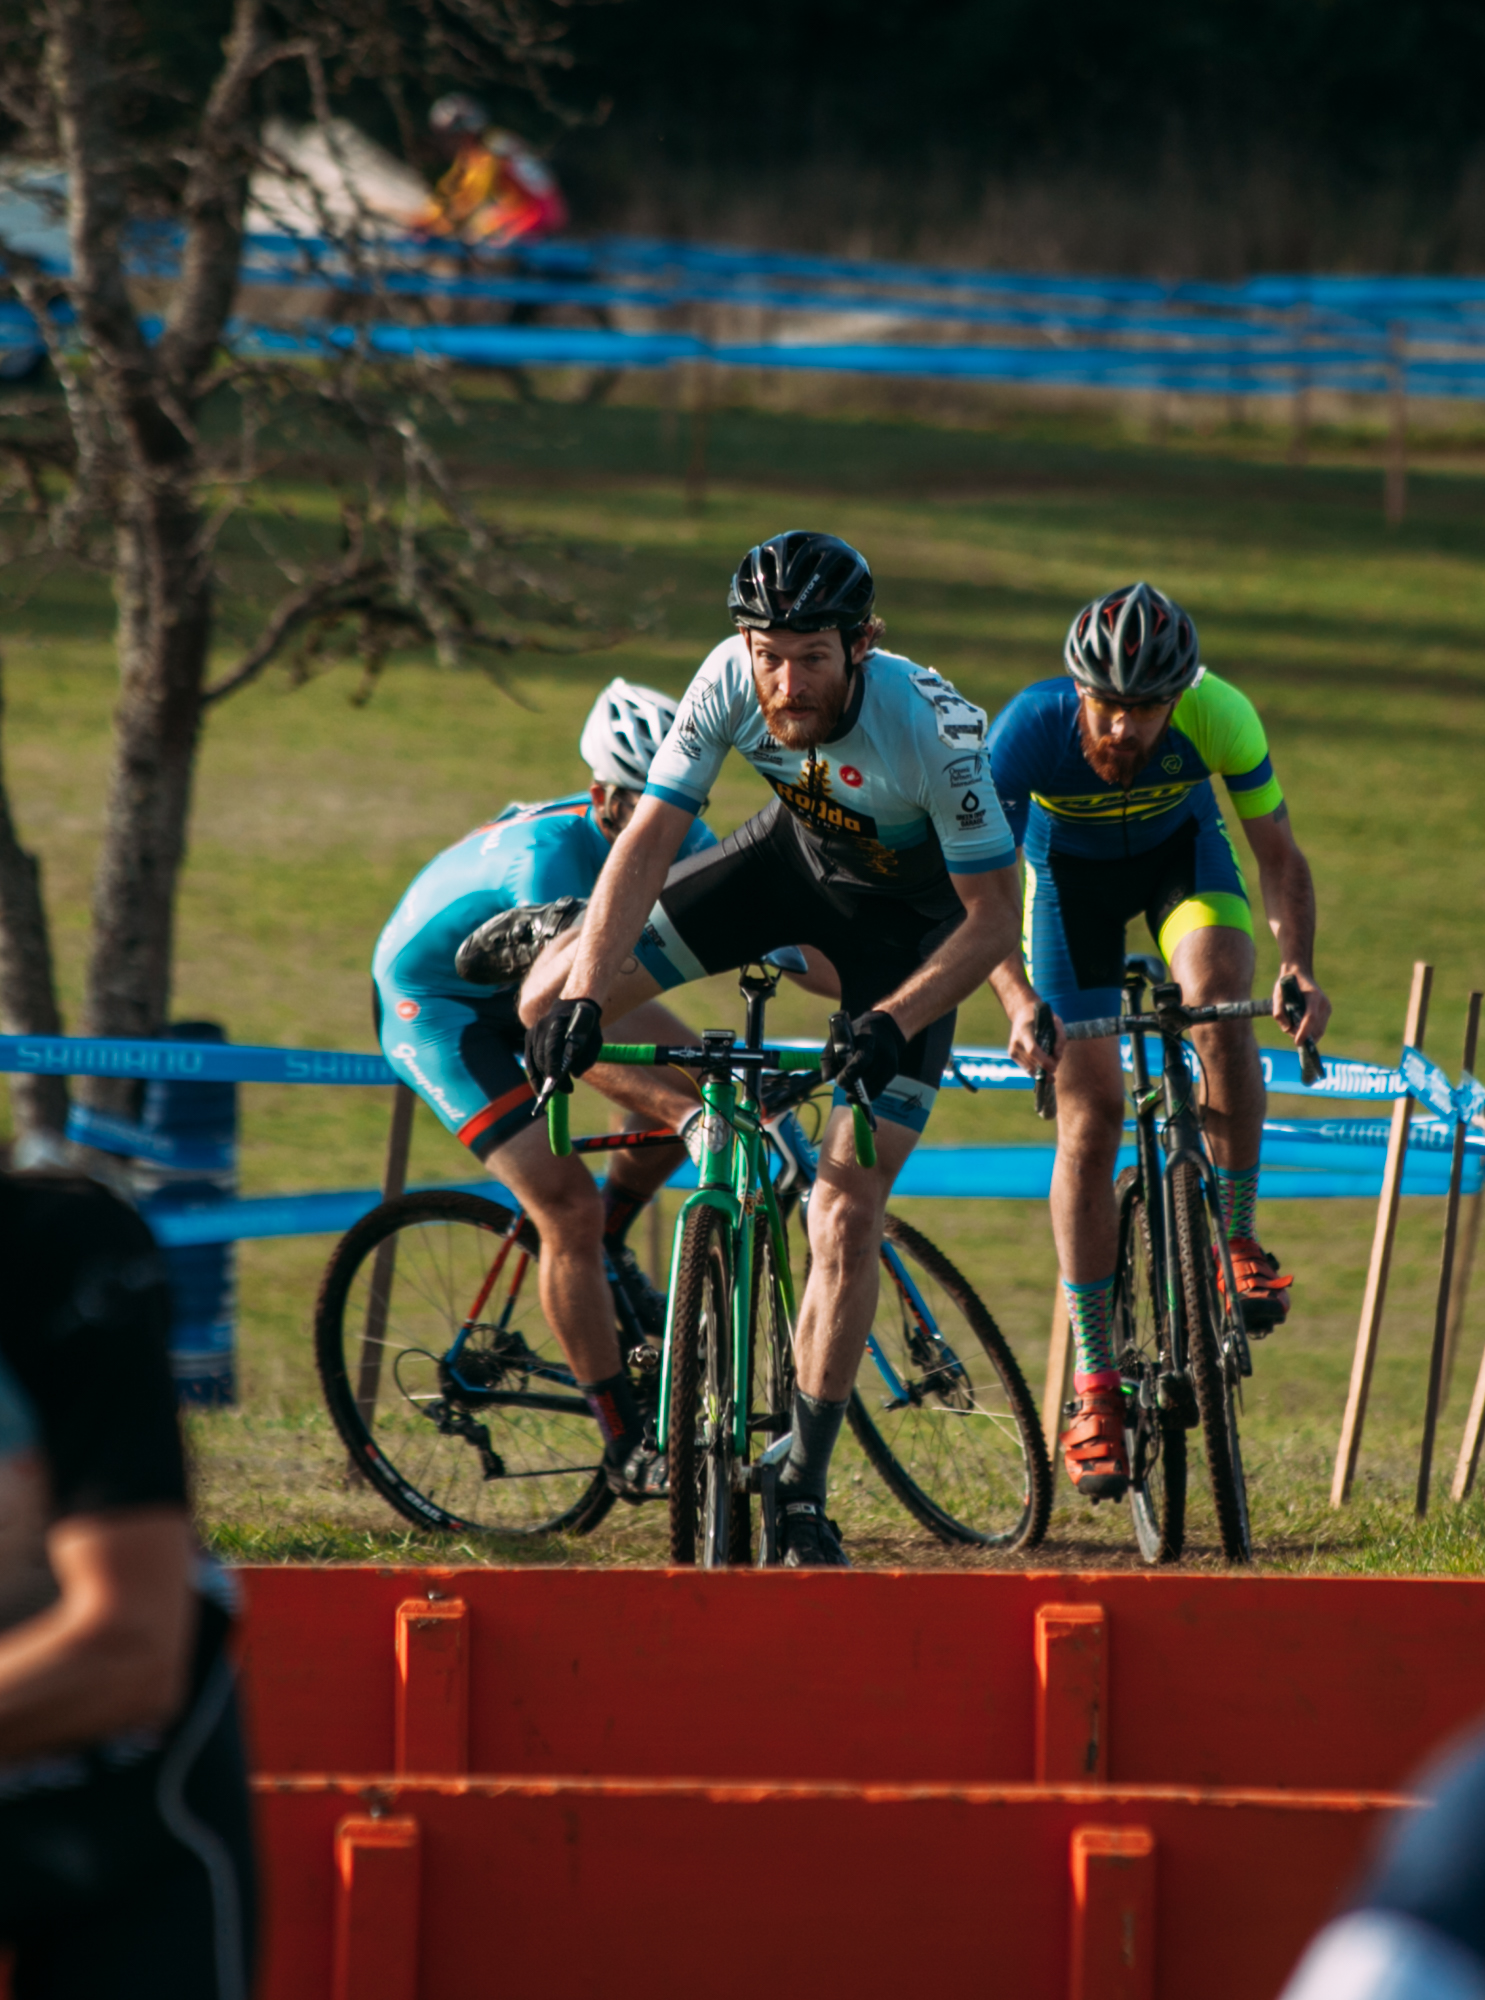 Cyclocross18_CCCX_RainierHS-58-mettlecycling.jpg